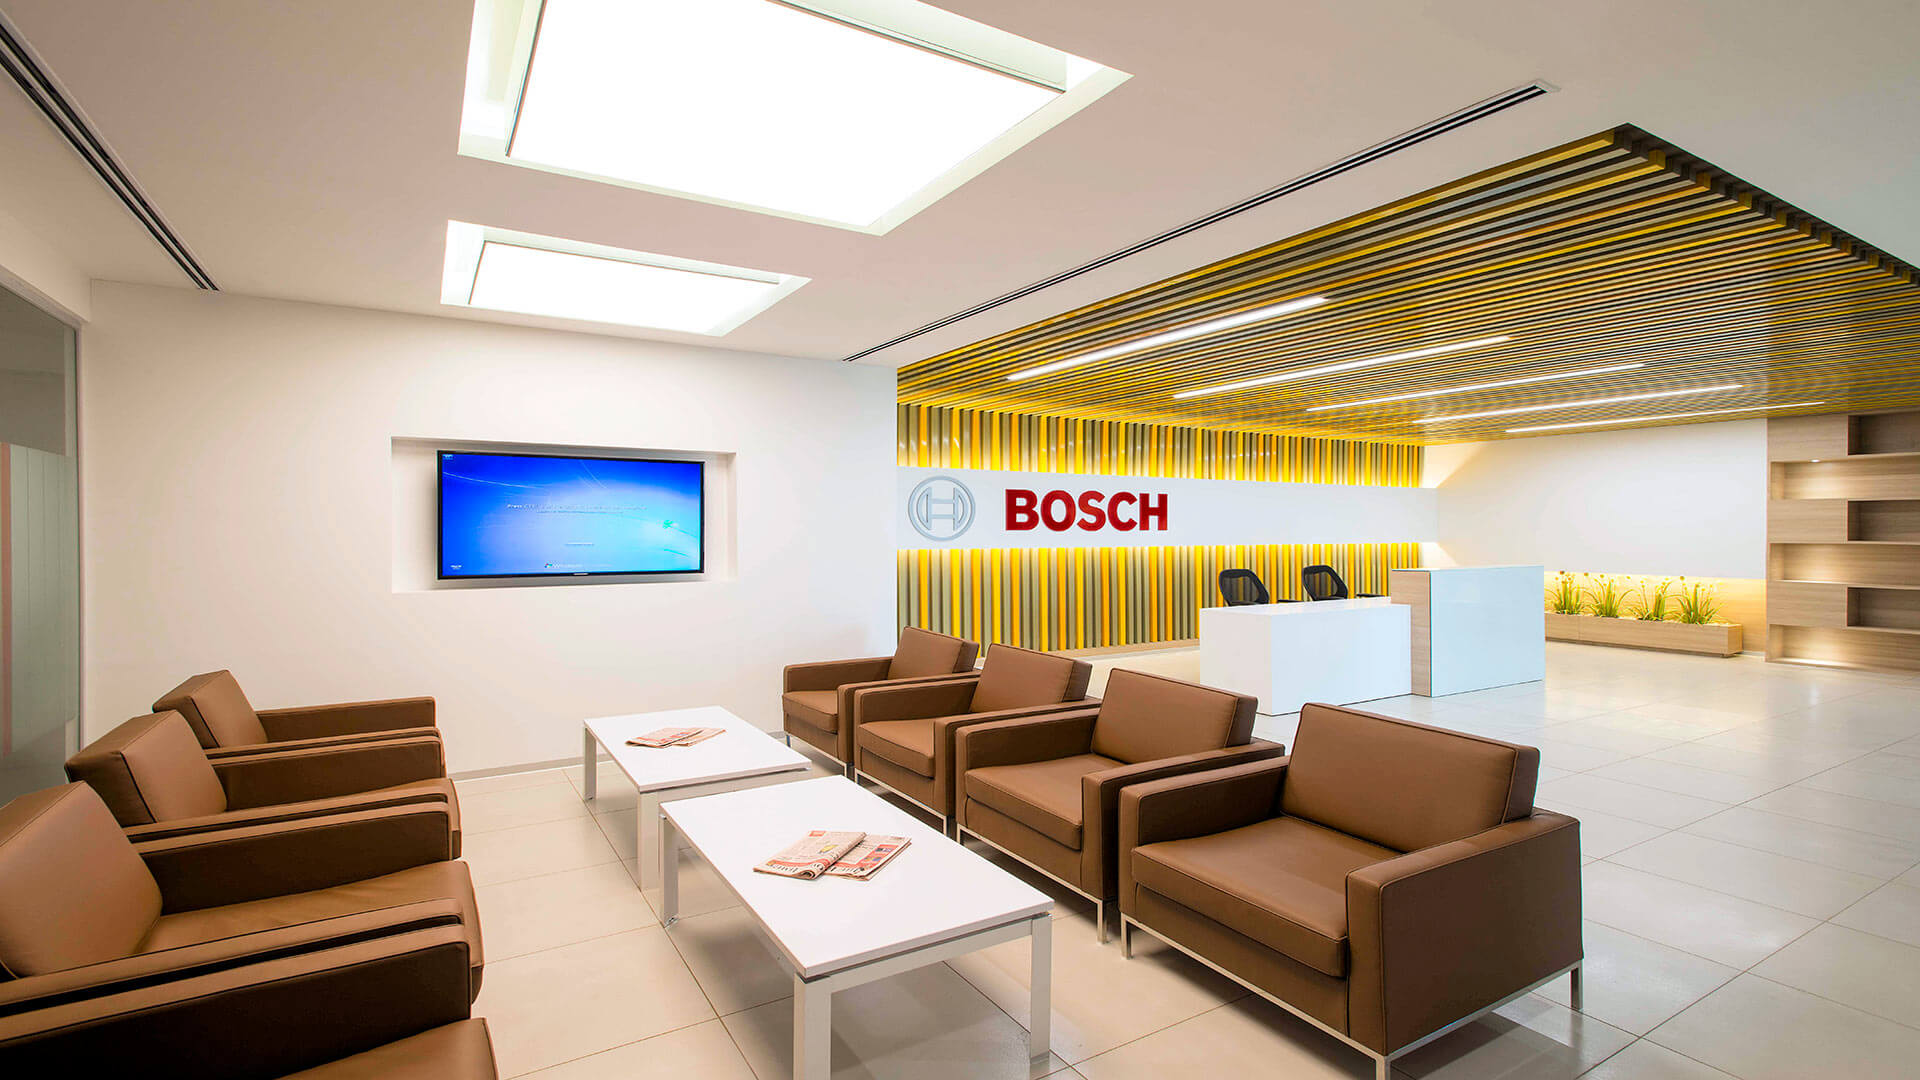 Bosch_Corp_Office_1